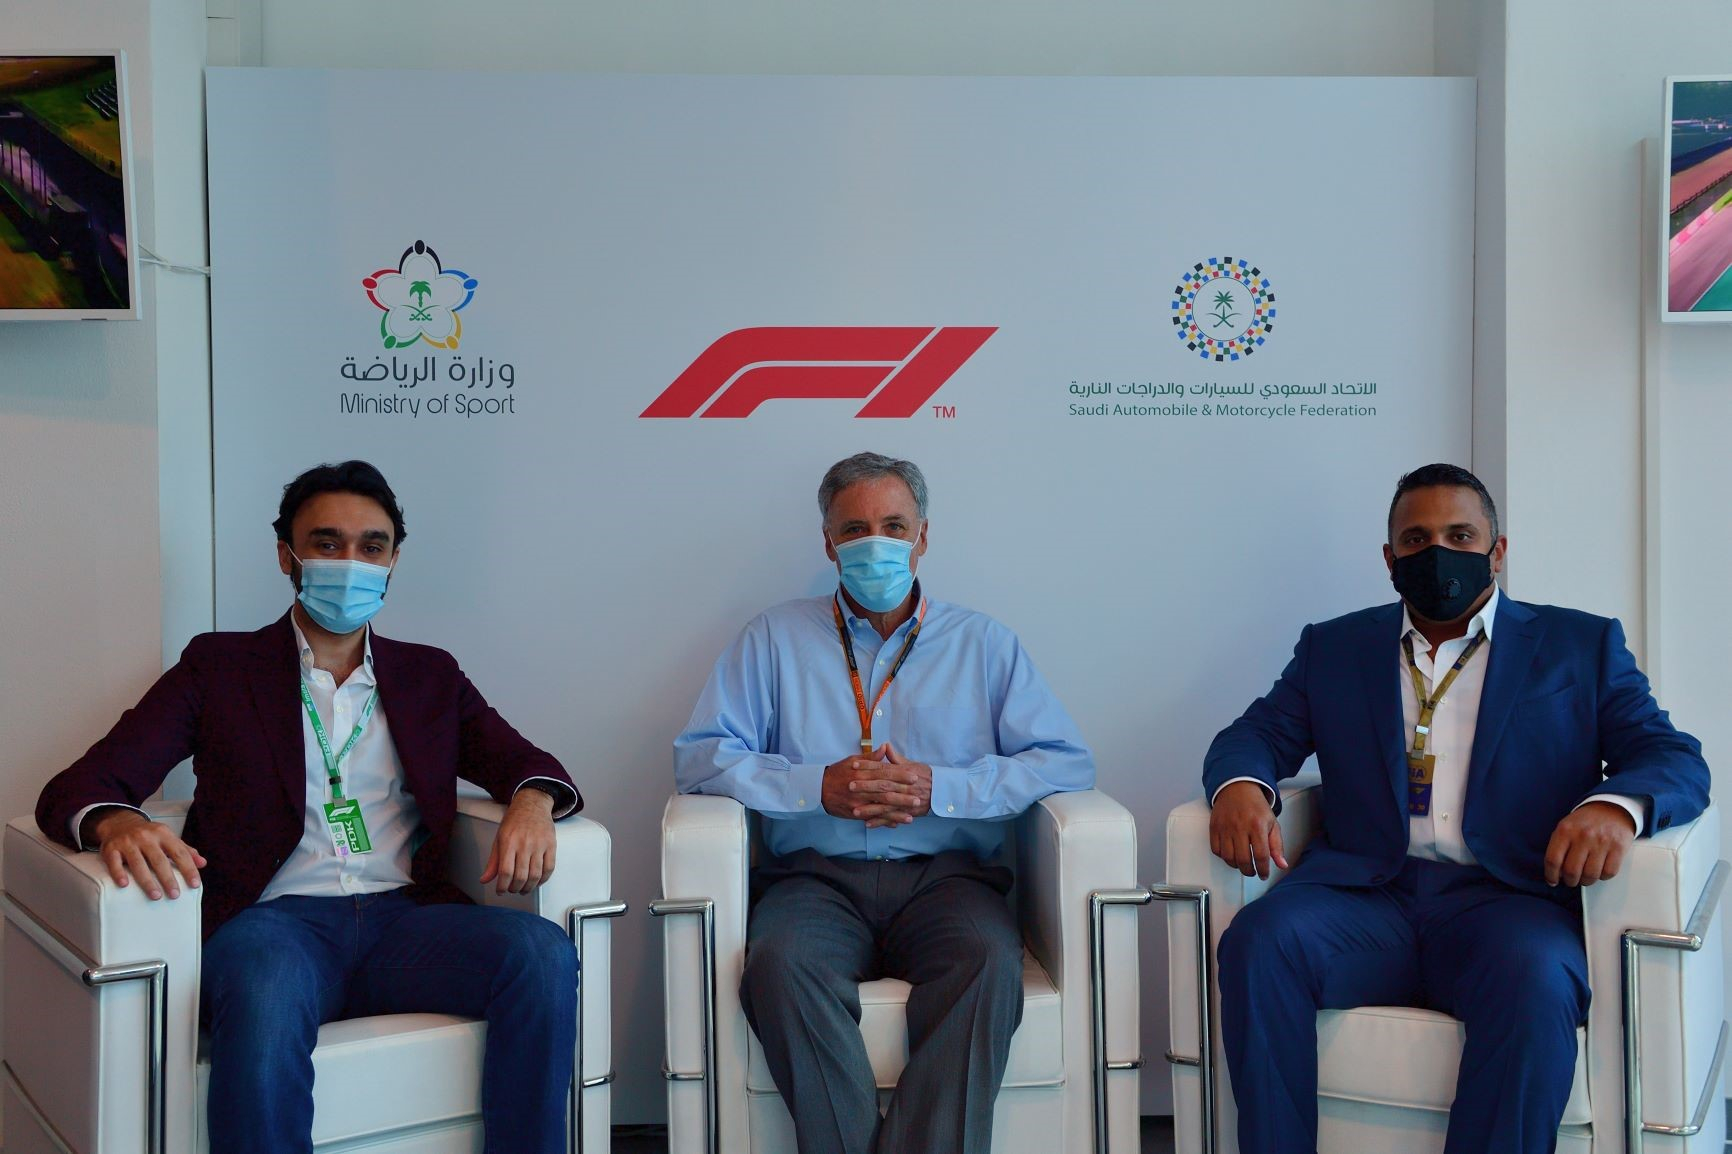 Saudi Arabia To Host Formula 1 Race In 2021 - Tires & Parts News